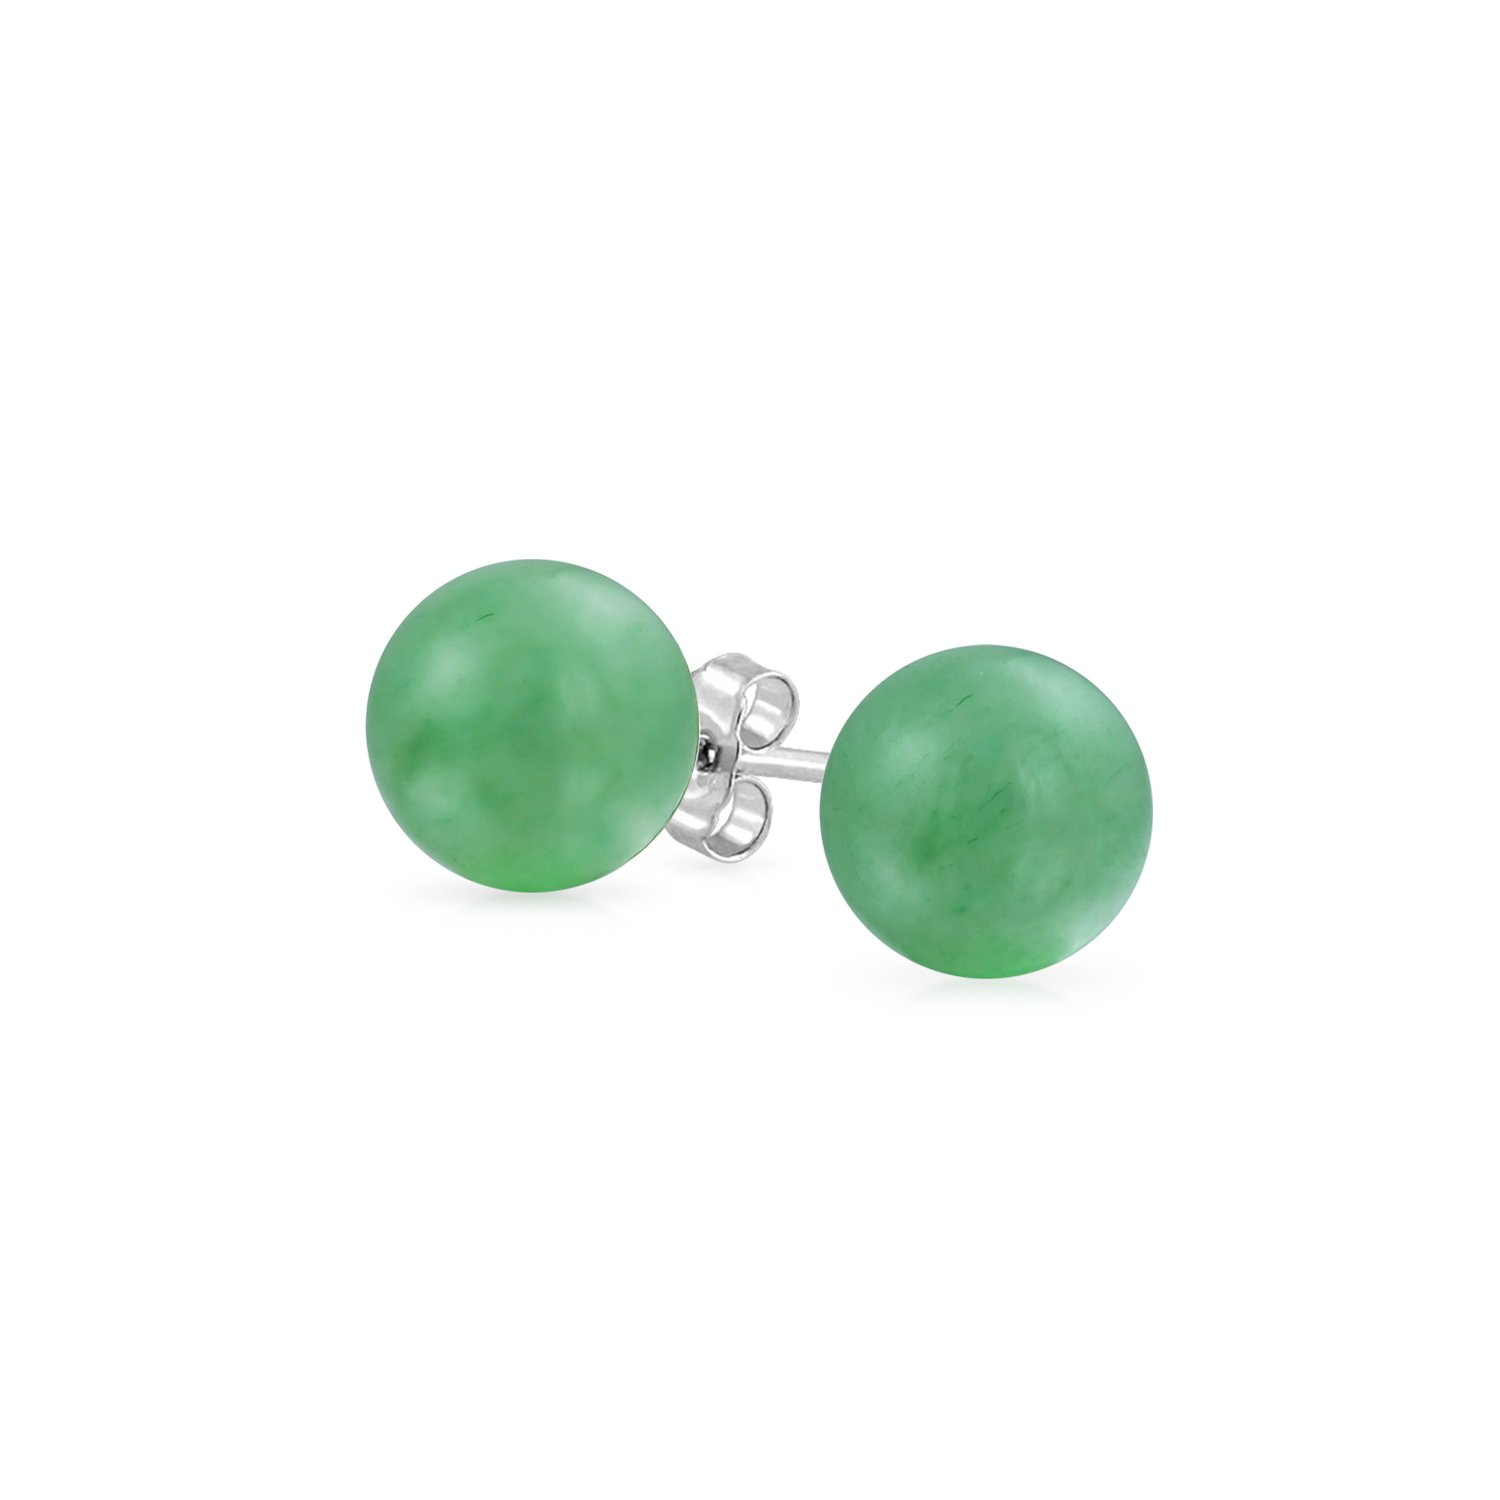 Dyed Aventurine Ball Stud earrings 925 Sterling Silver 6mm